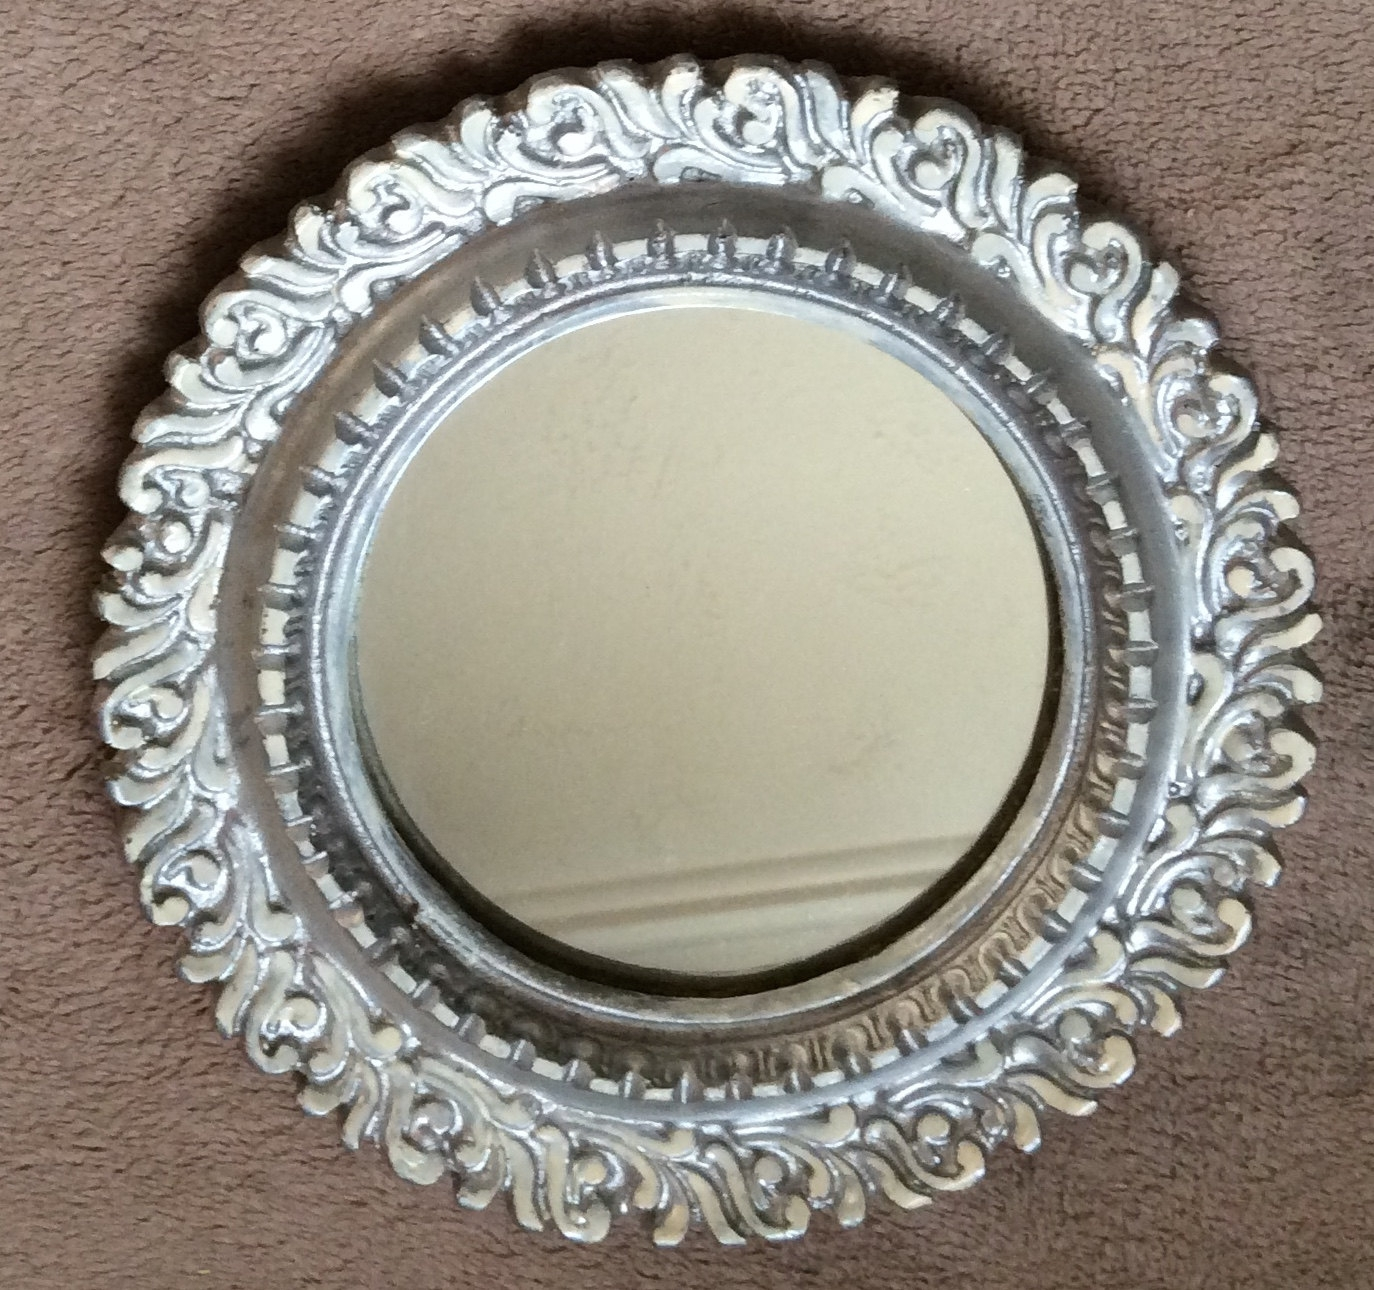 Vintage Ornate Round Mirror With Silver Painted Finish Home Decor Regarding Ornate Round Mirror (Image 13 of 15)